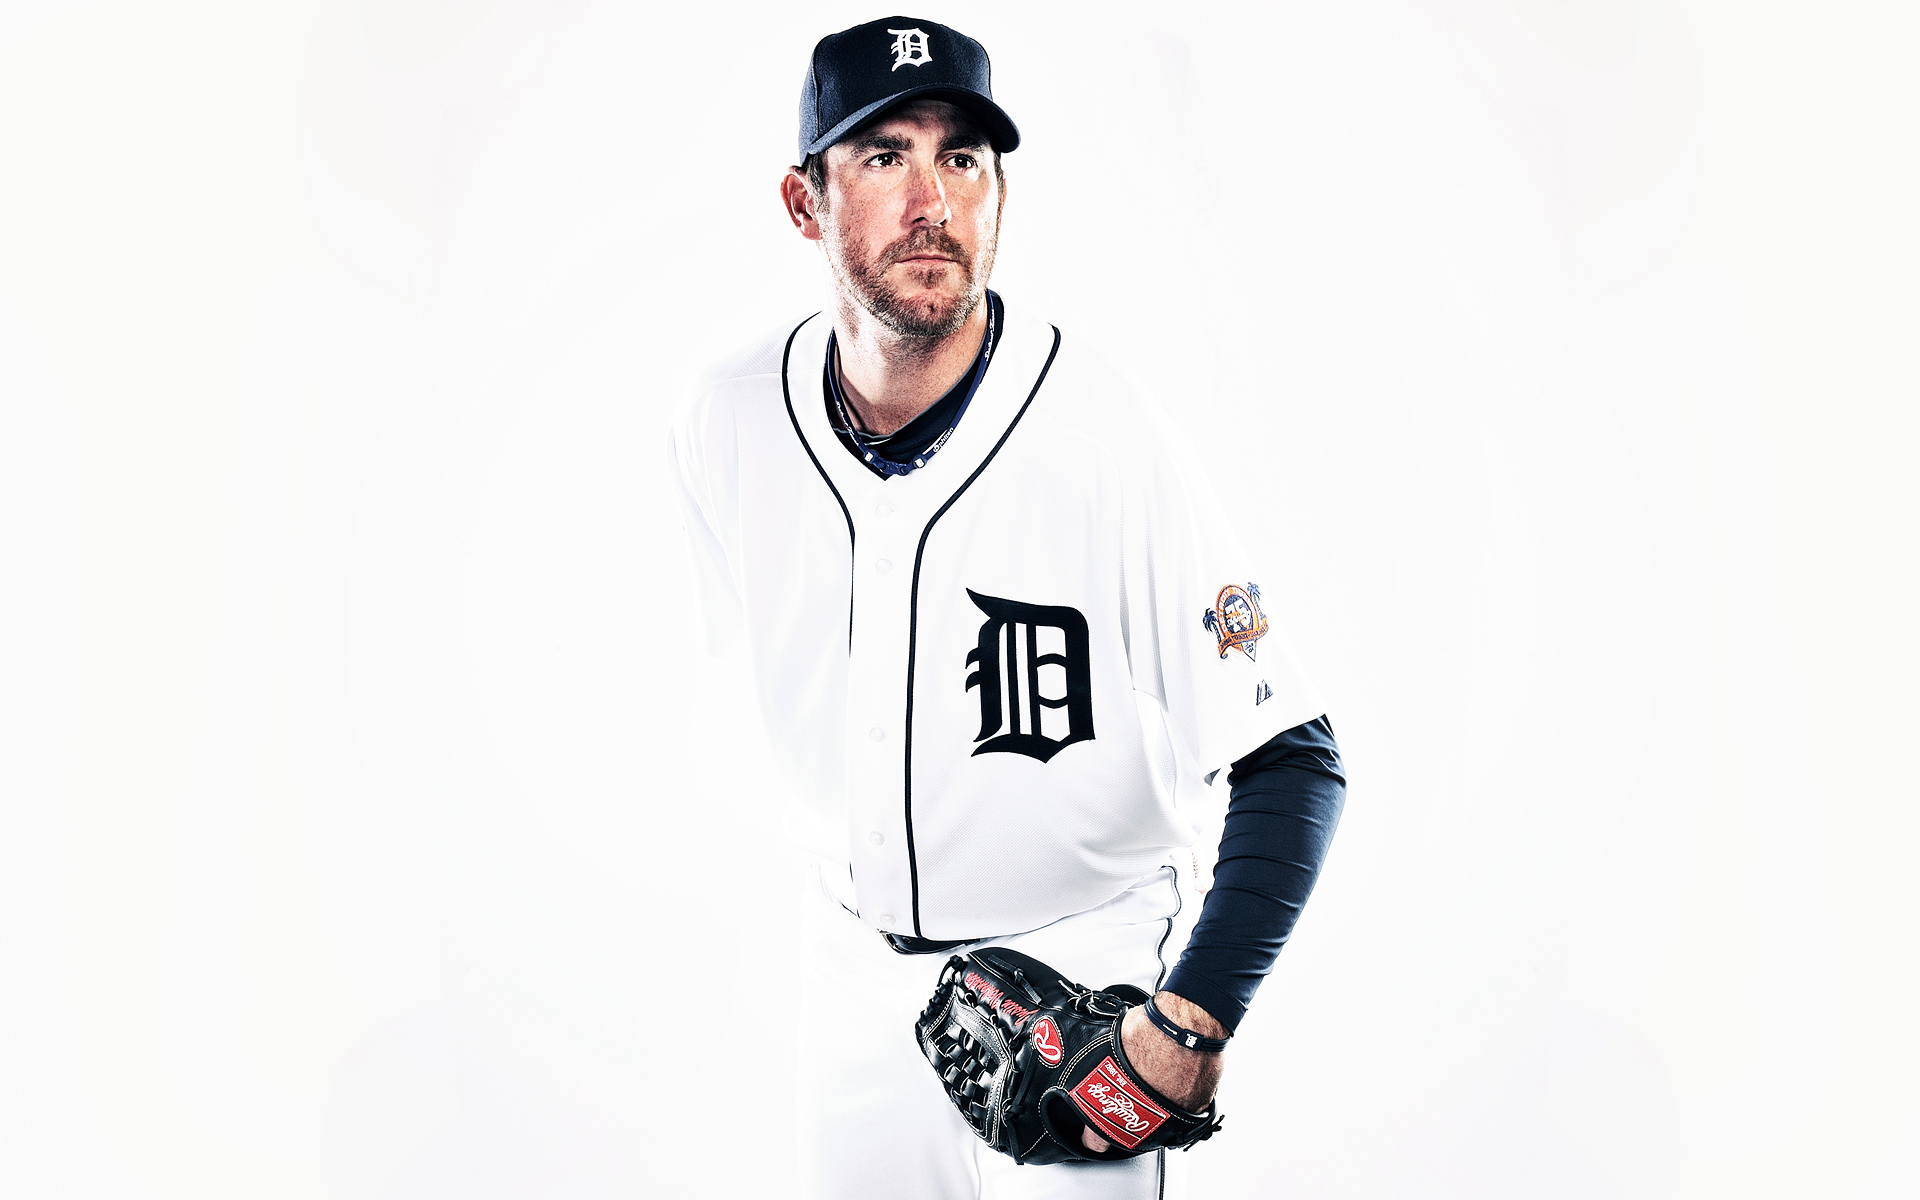 Justin Verlander by Sports Photographer Blair Bunting